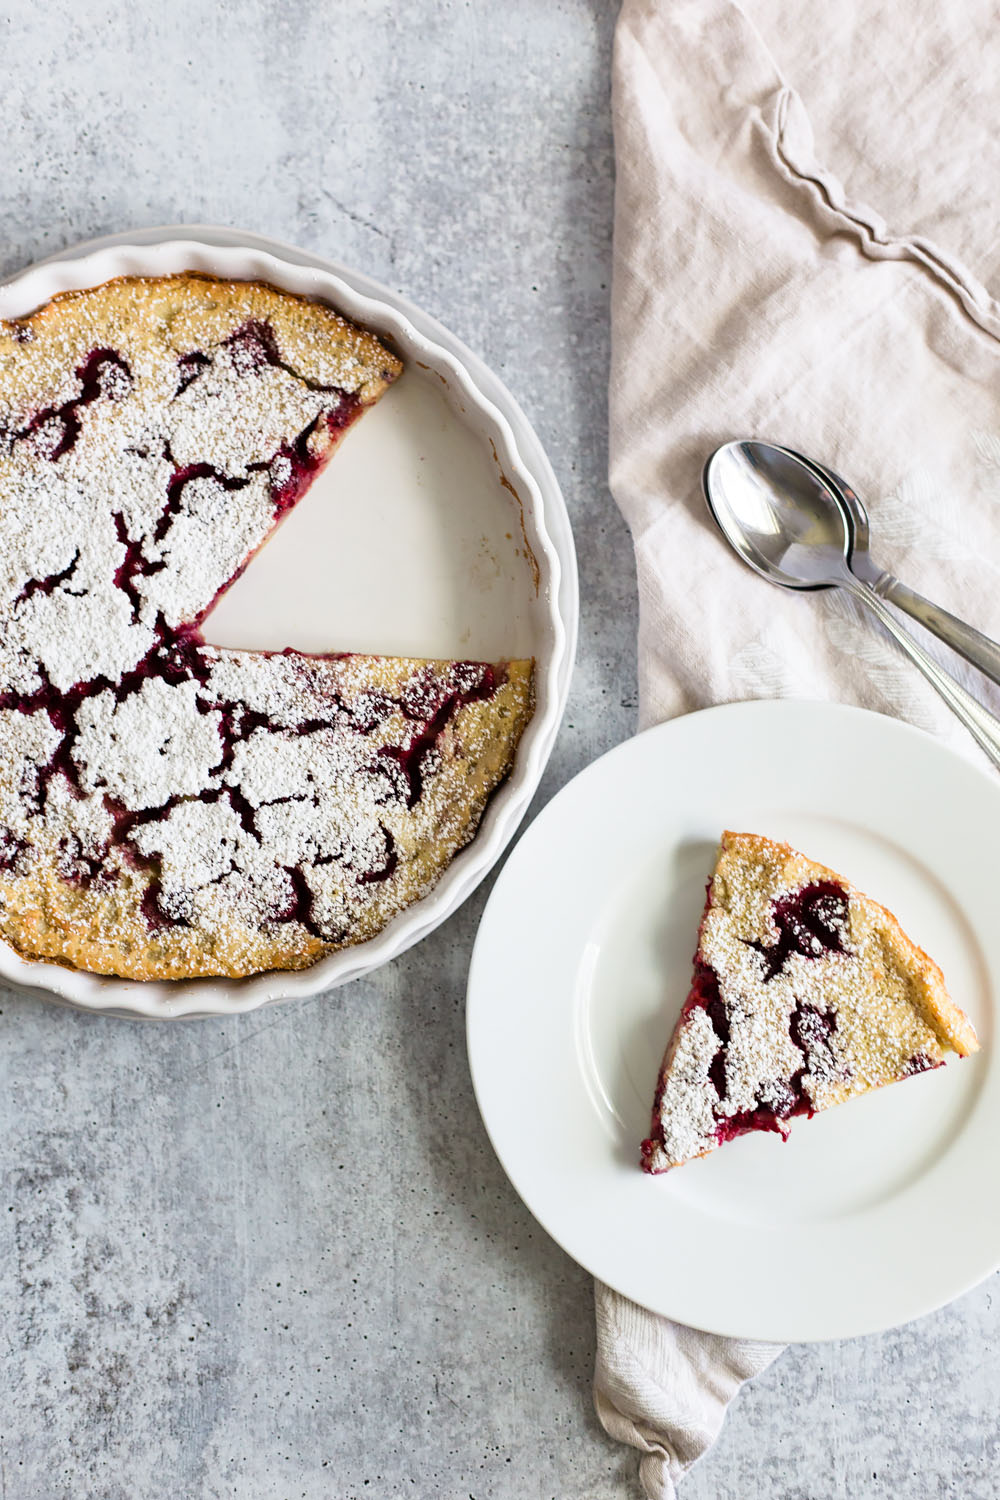 Raspberry Clafoutis with a slice